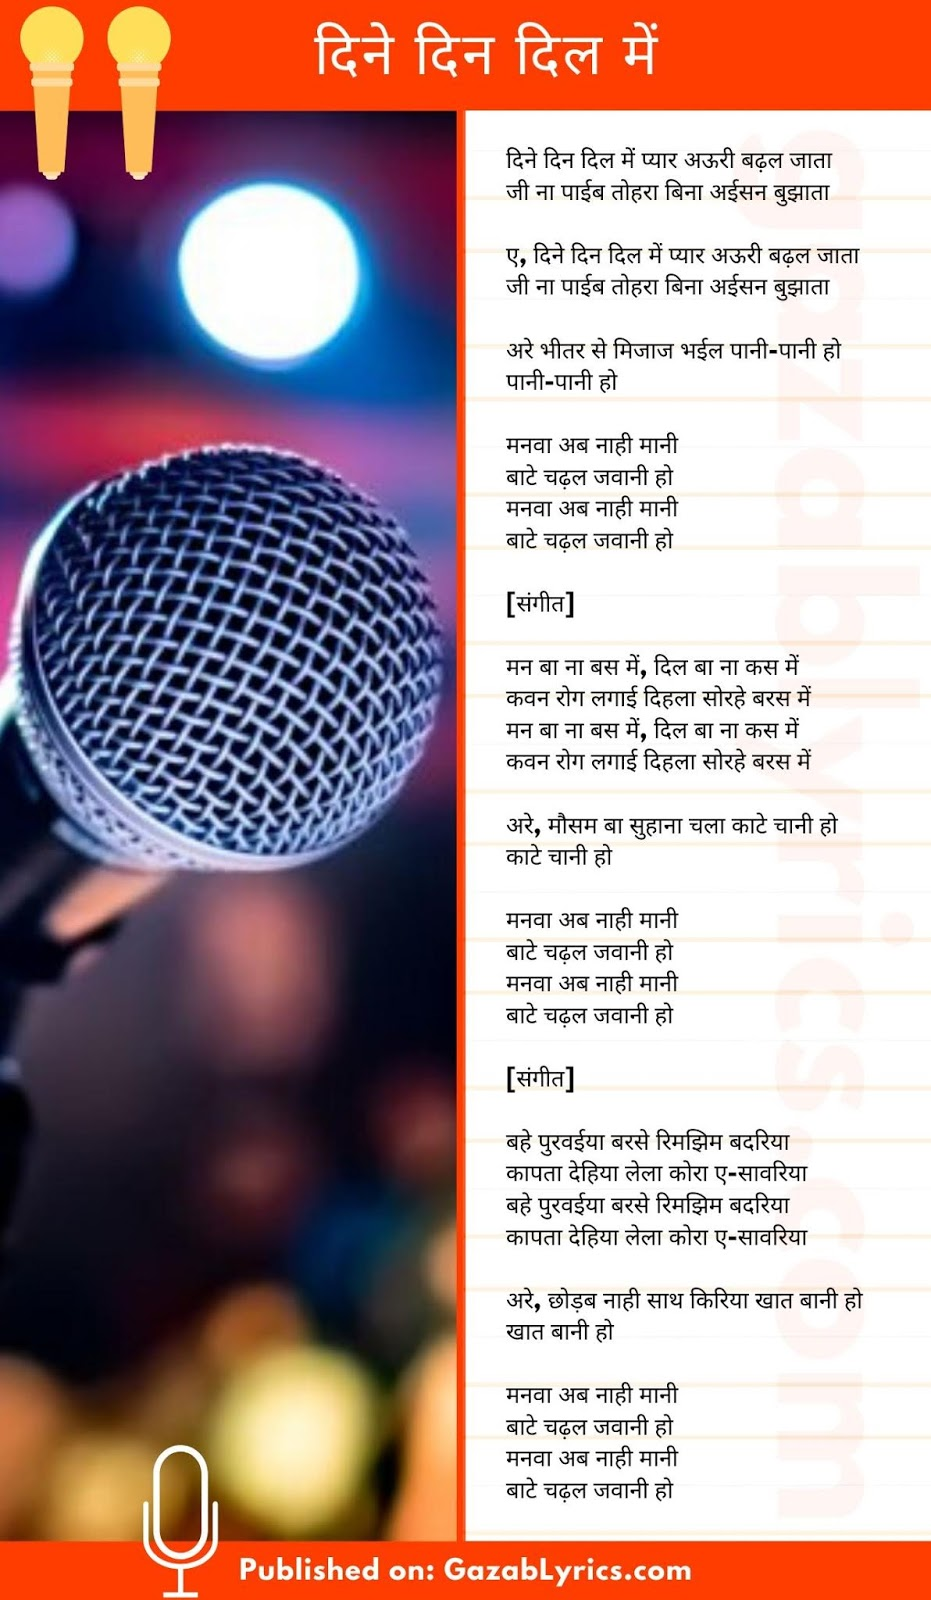 Dine Din Dil Me song lyrics image